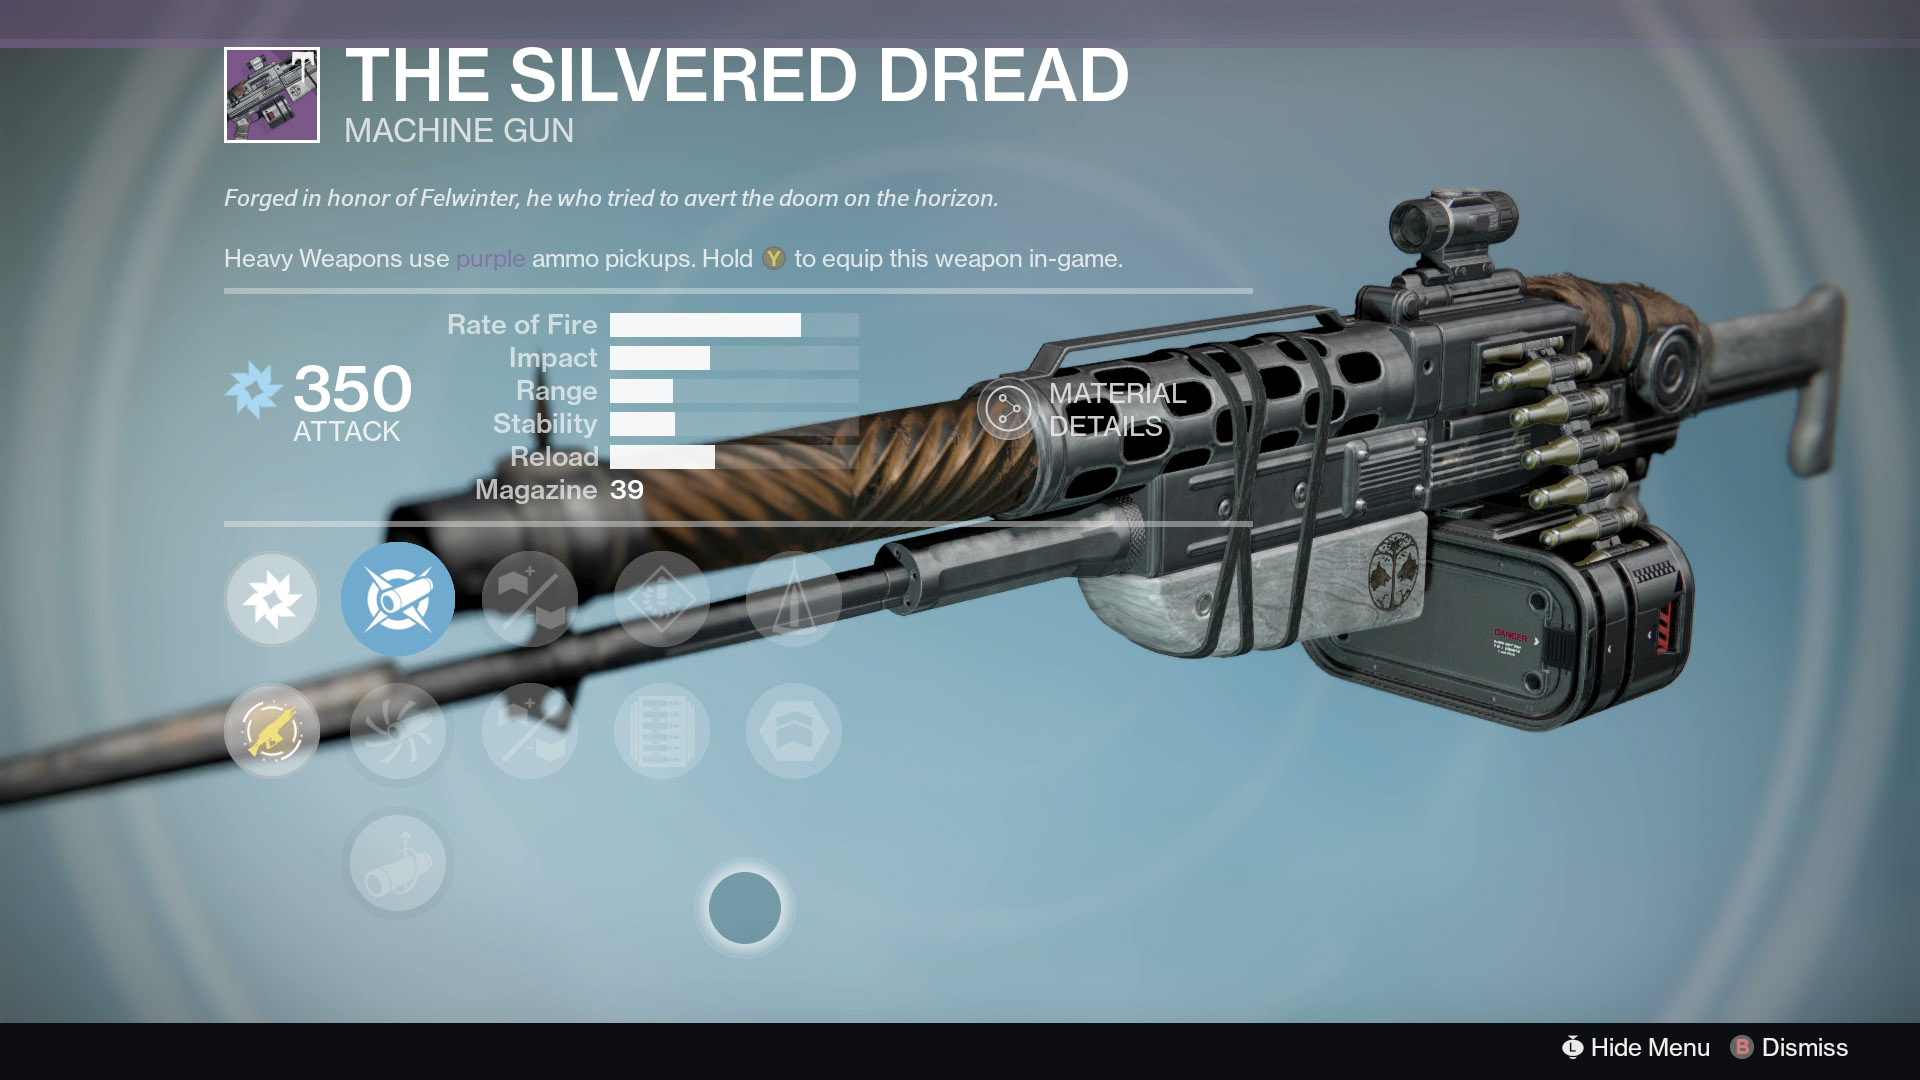 The Silvered Dread, Iron Banner's Vendor Weapon